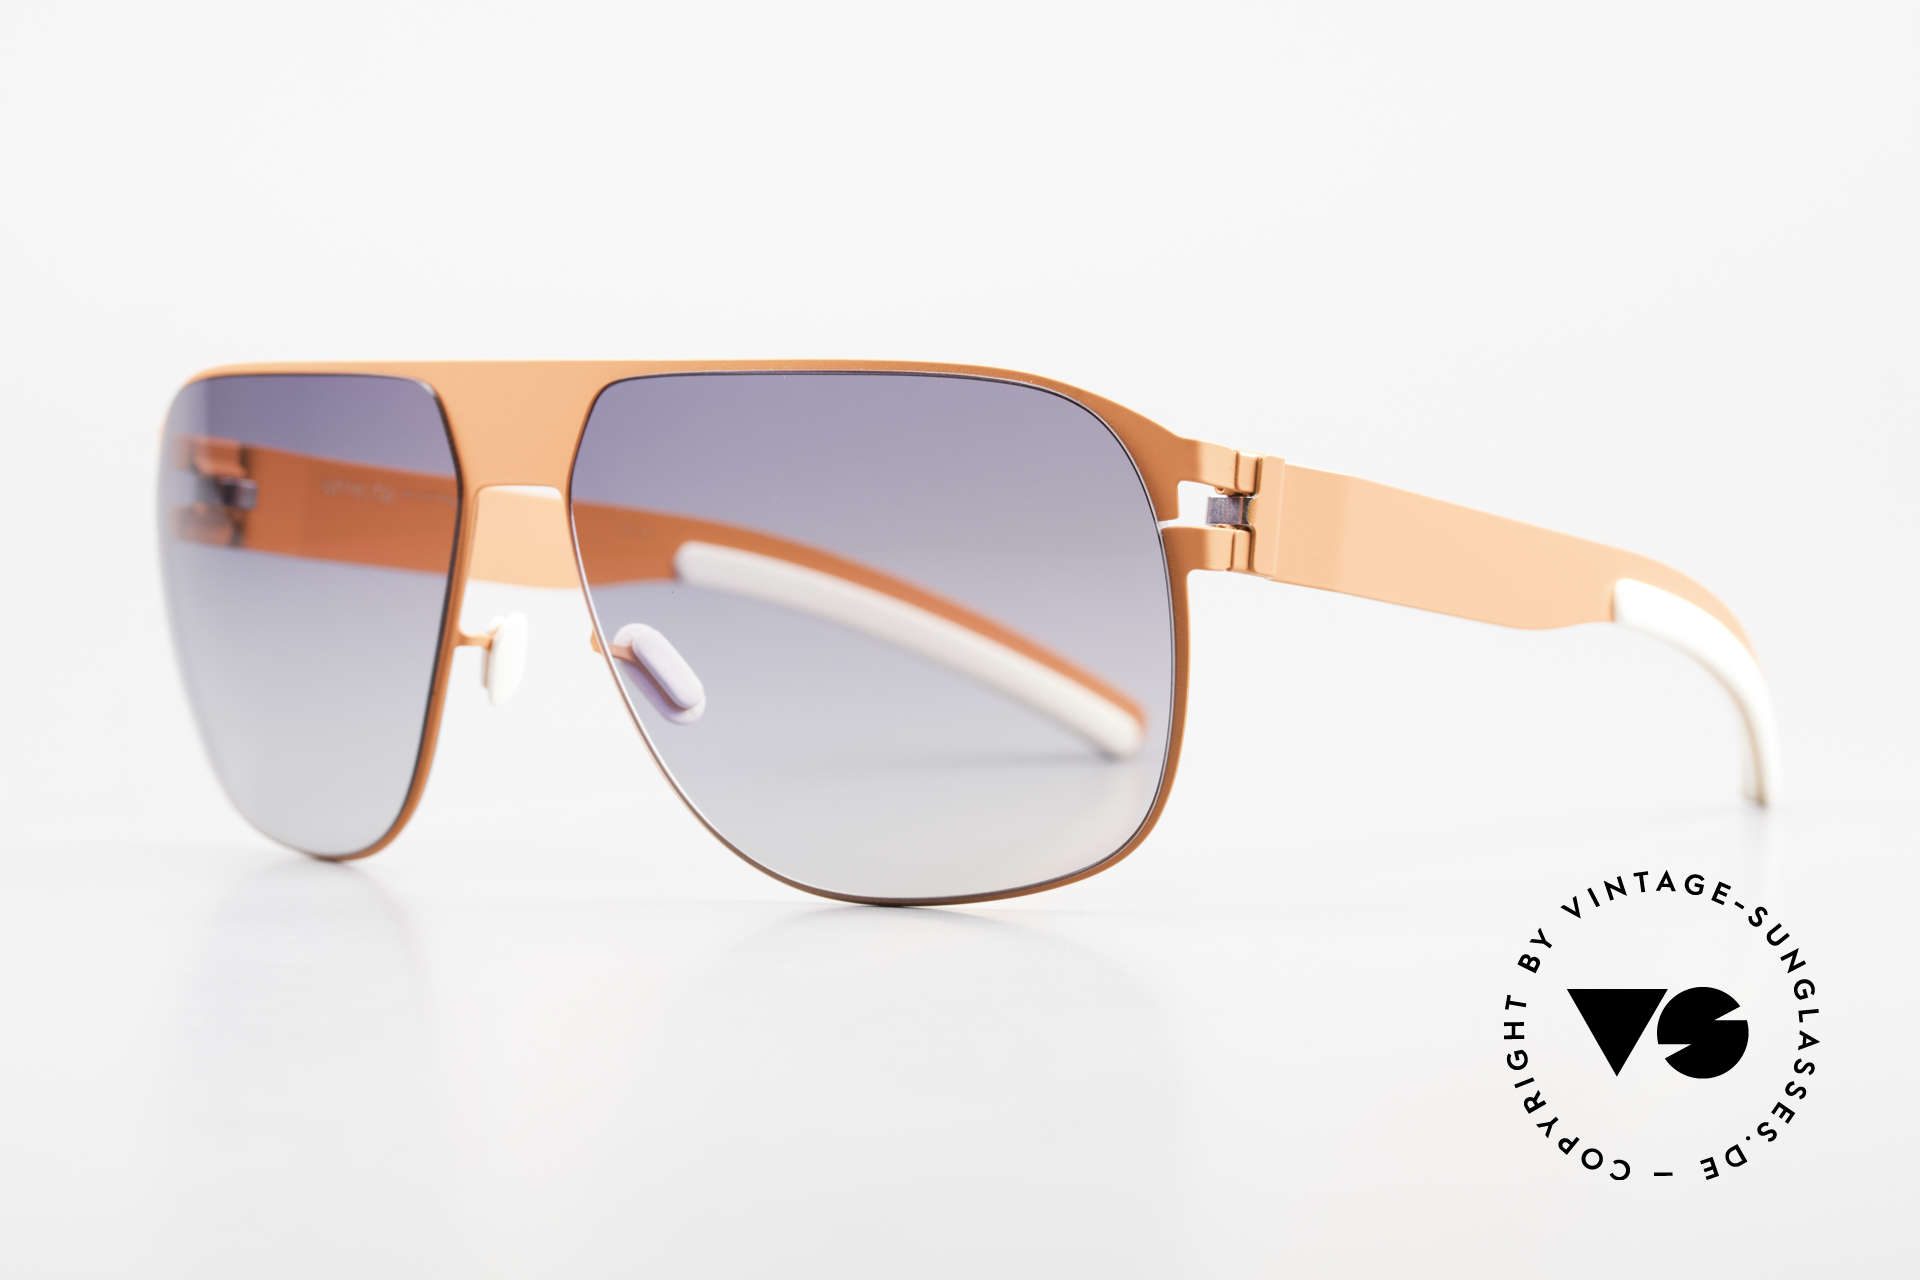 Mykita Tim Collection No 1 Shades 2011's, top-notch quality, made in Germany (Berlin-Kreuzberg), Made for Men